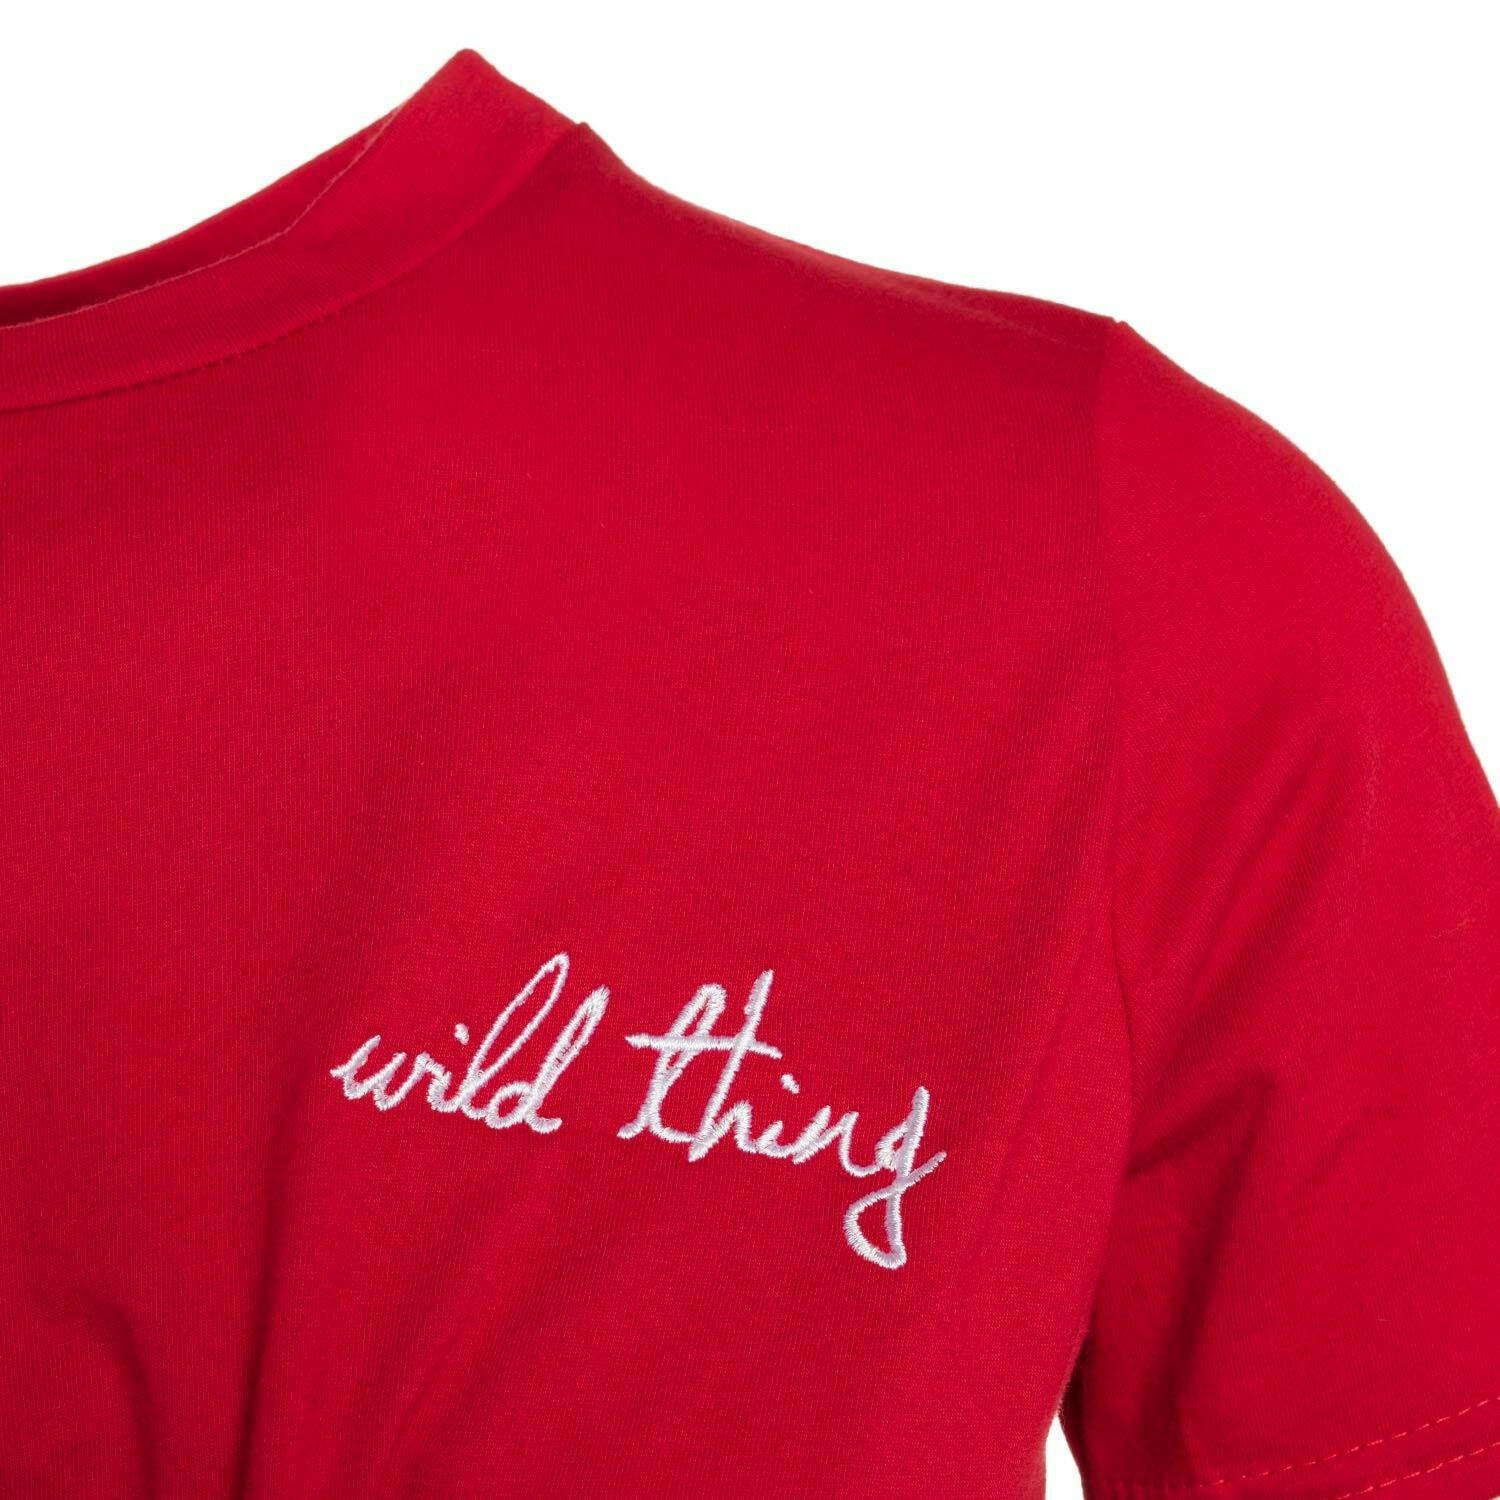 RED WILD THING CROP TEE